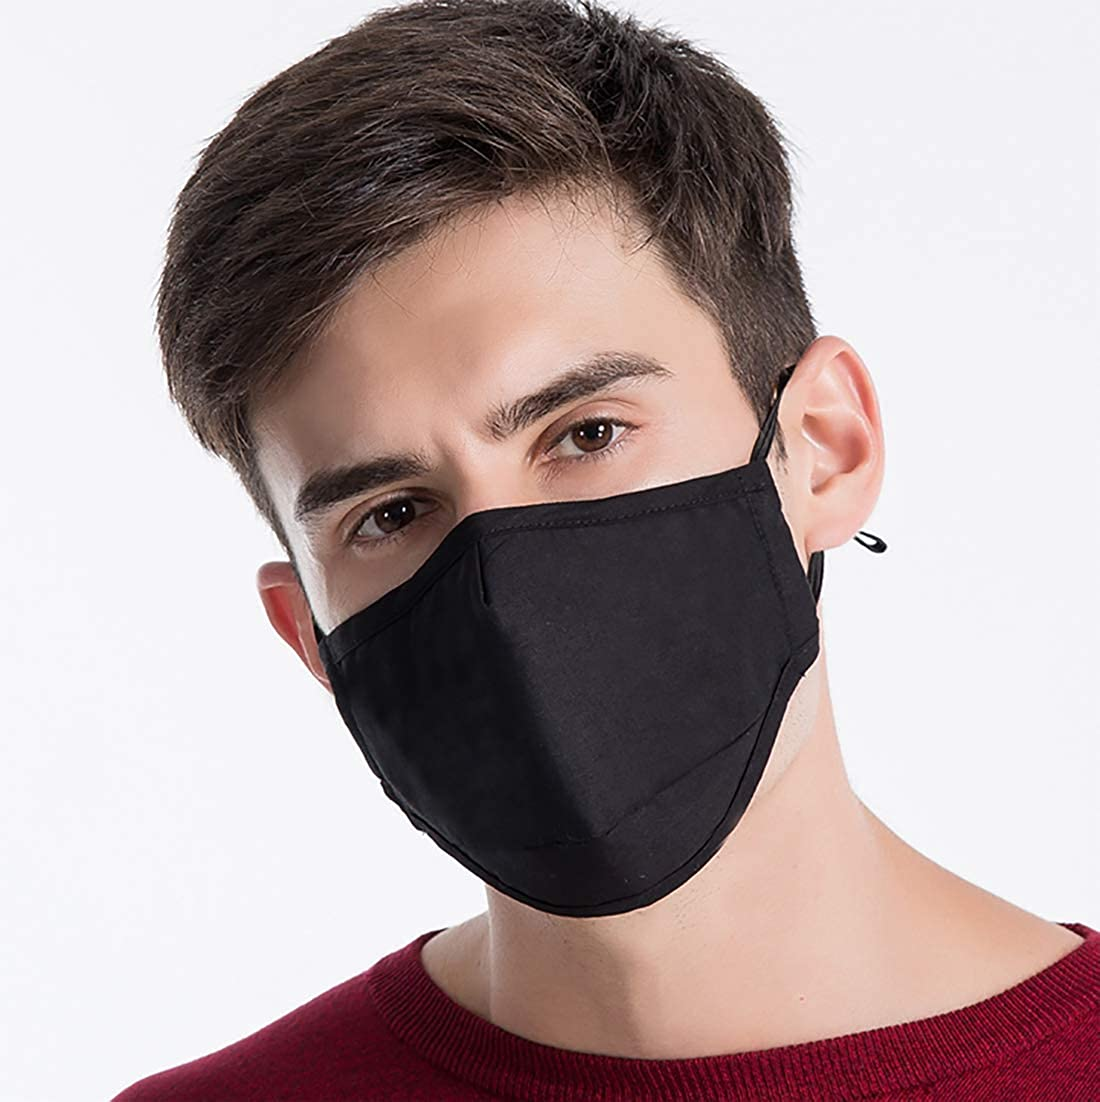 Rarmycus 1+10 Reusable Mouth Cover Adult Unisex and 15 Years Old and Up